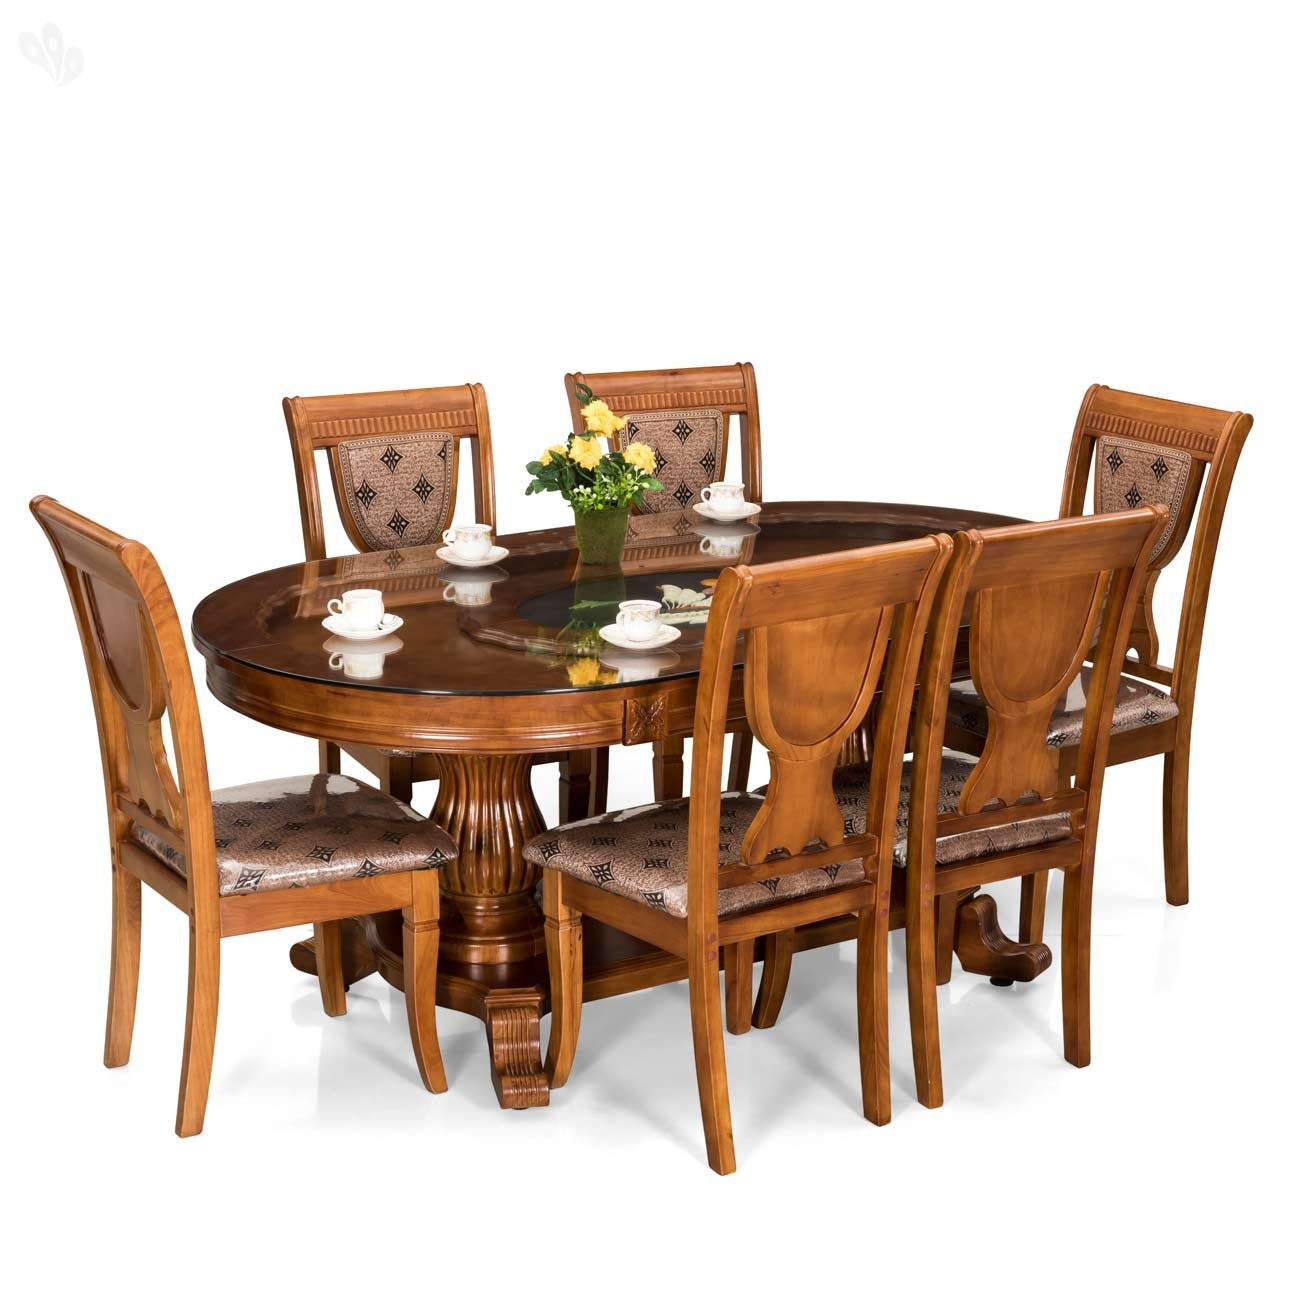 Royal Oak Titan Dining Set With Six Chairs Brown Amazon In Home Kitchen